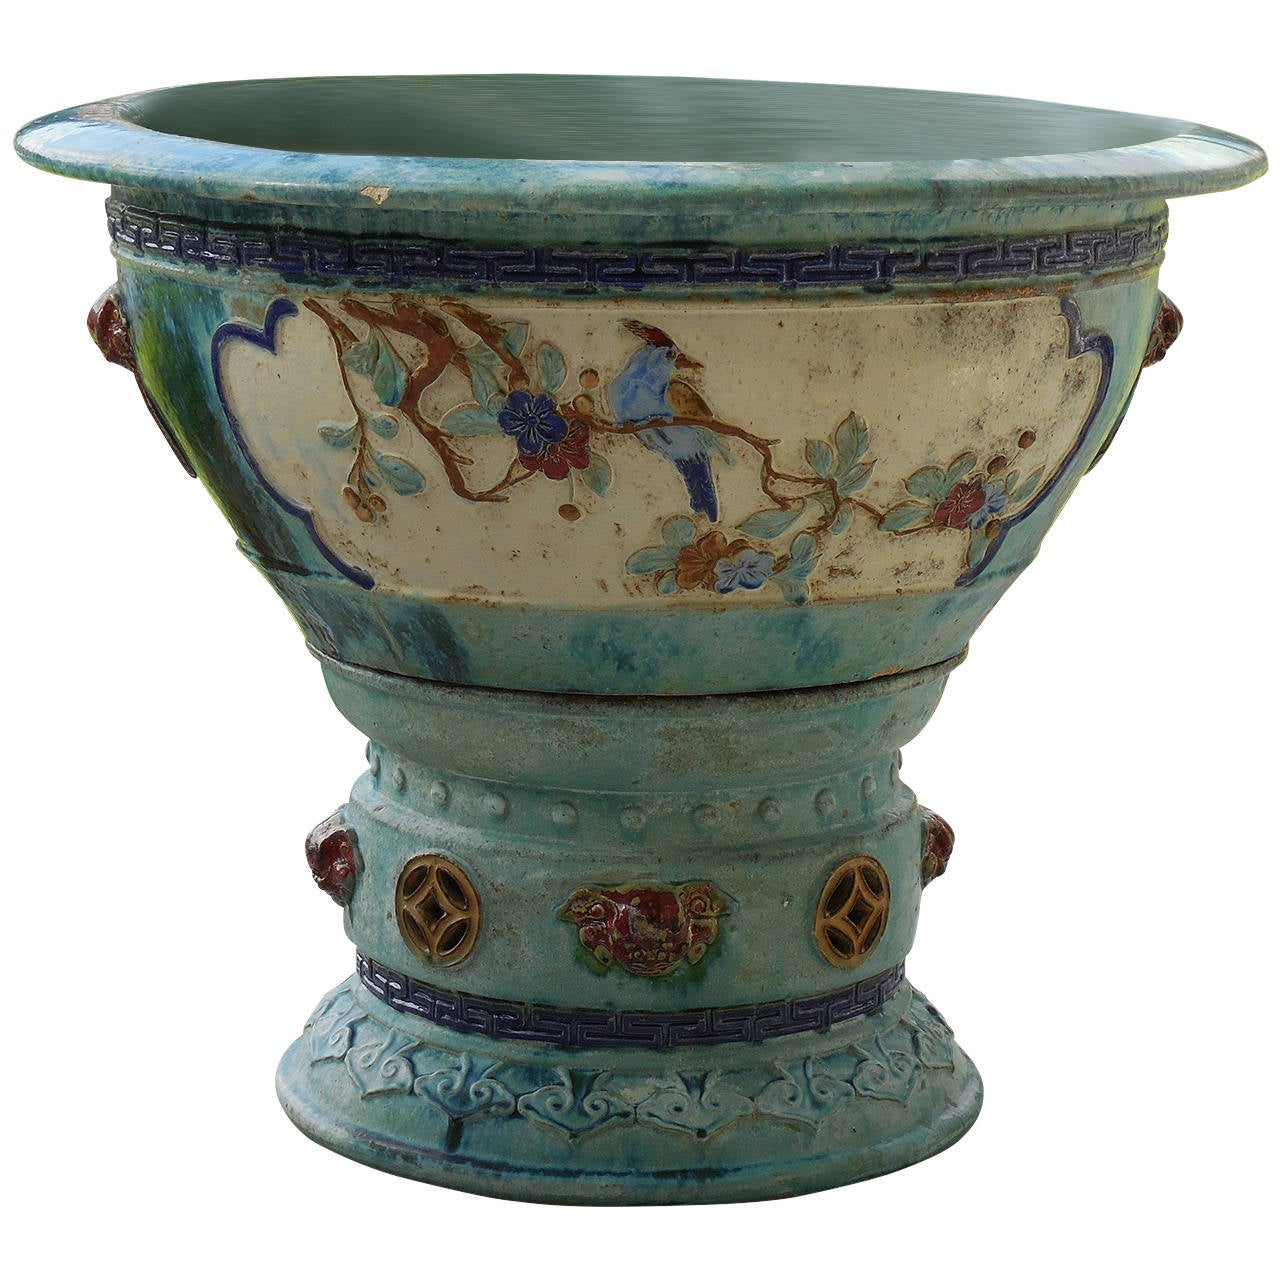 Chinese ceramic large garden planter at 1stdibs for Outdoor ceramic planters